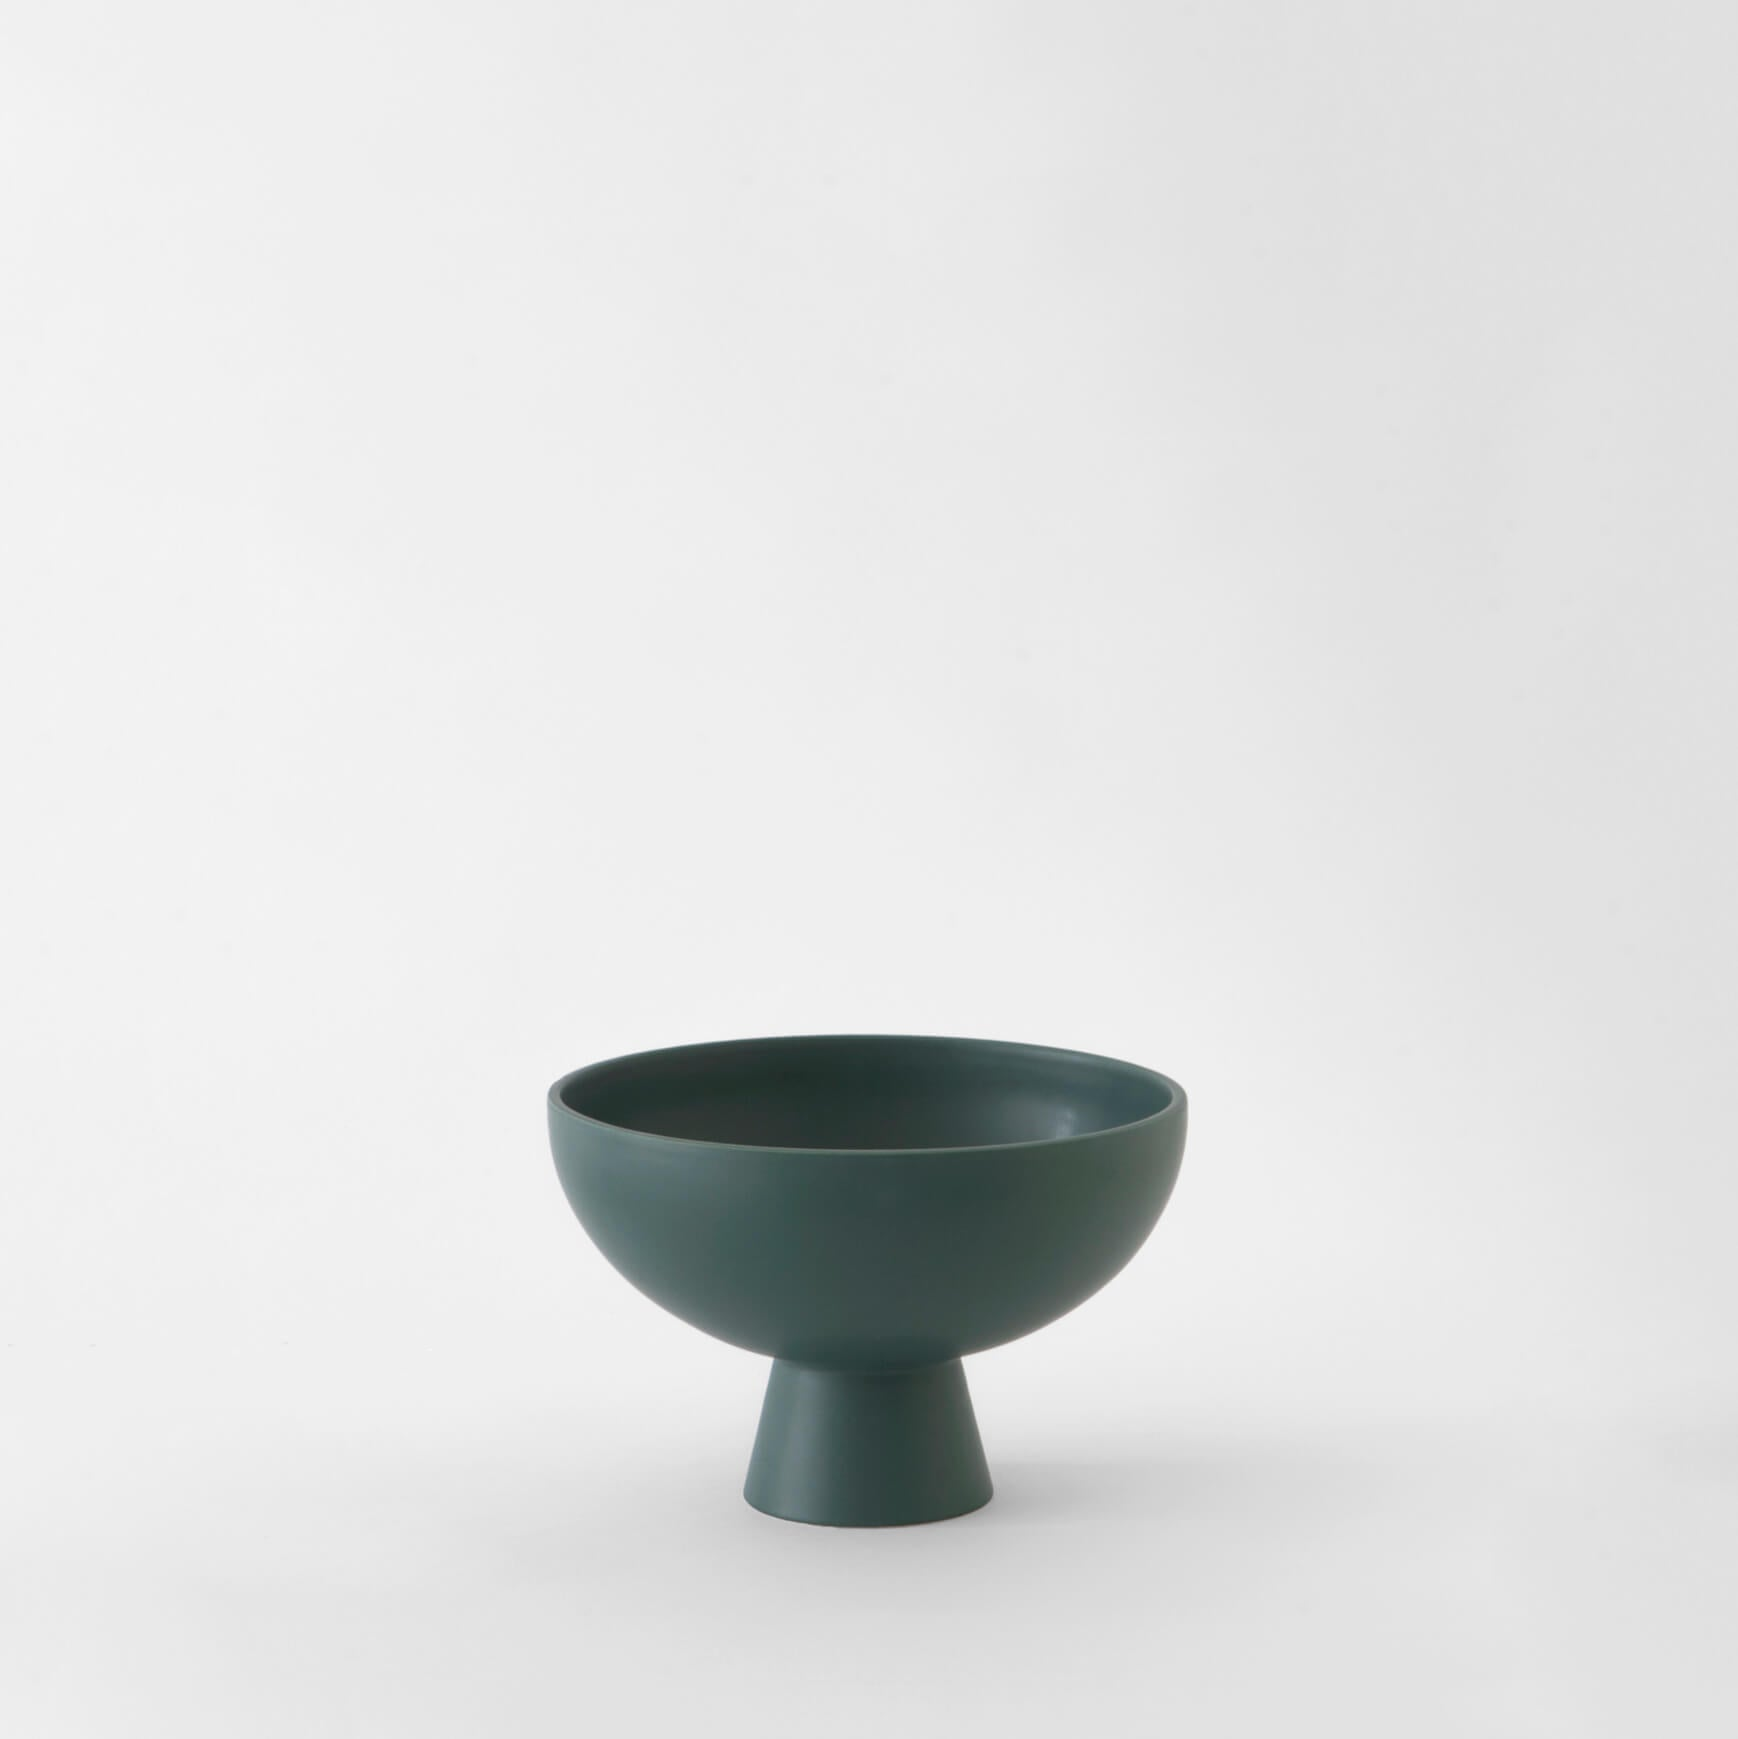 Strøm earthenware and stoneware collection by danish designers Raawii, Strøm bowl, Nave Shop, online concept store